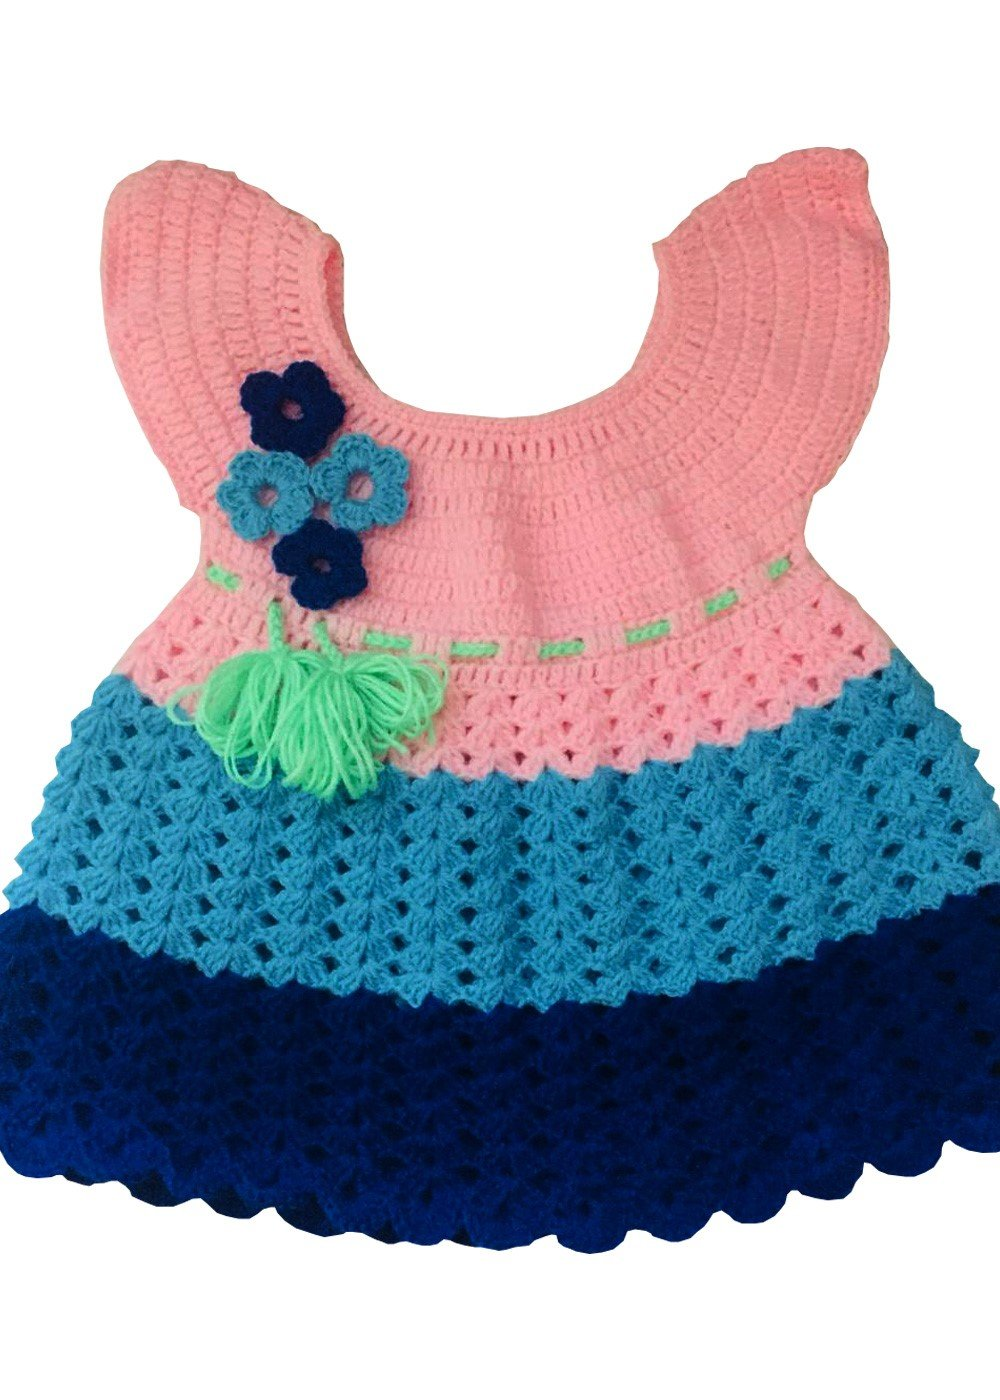 Hand Crocheted Dress Baby Pink and Blue